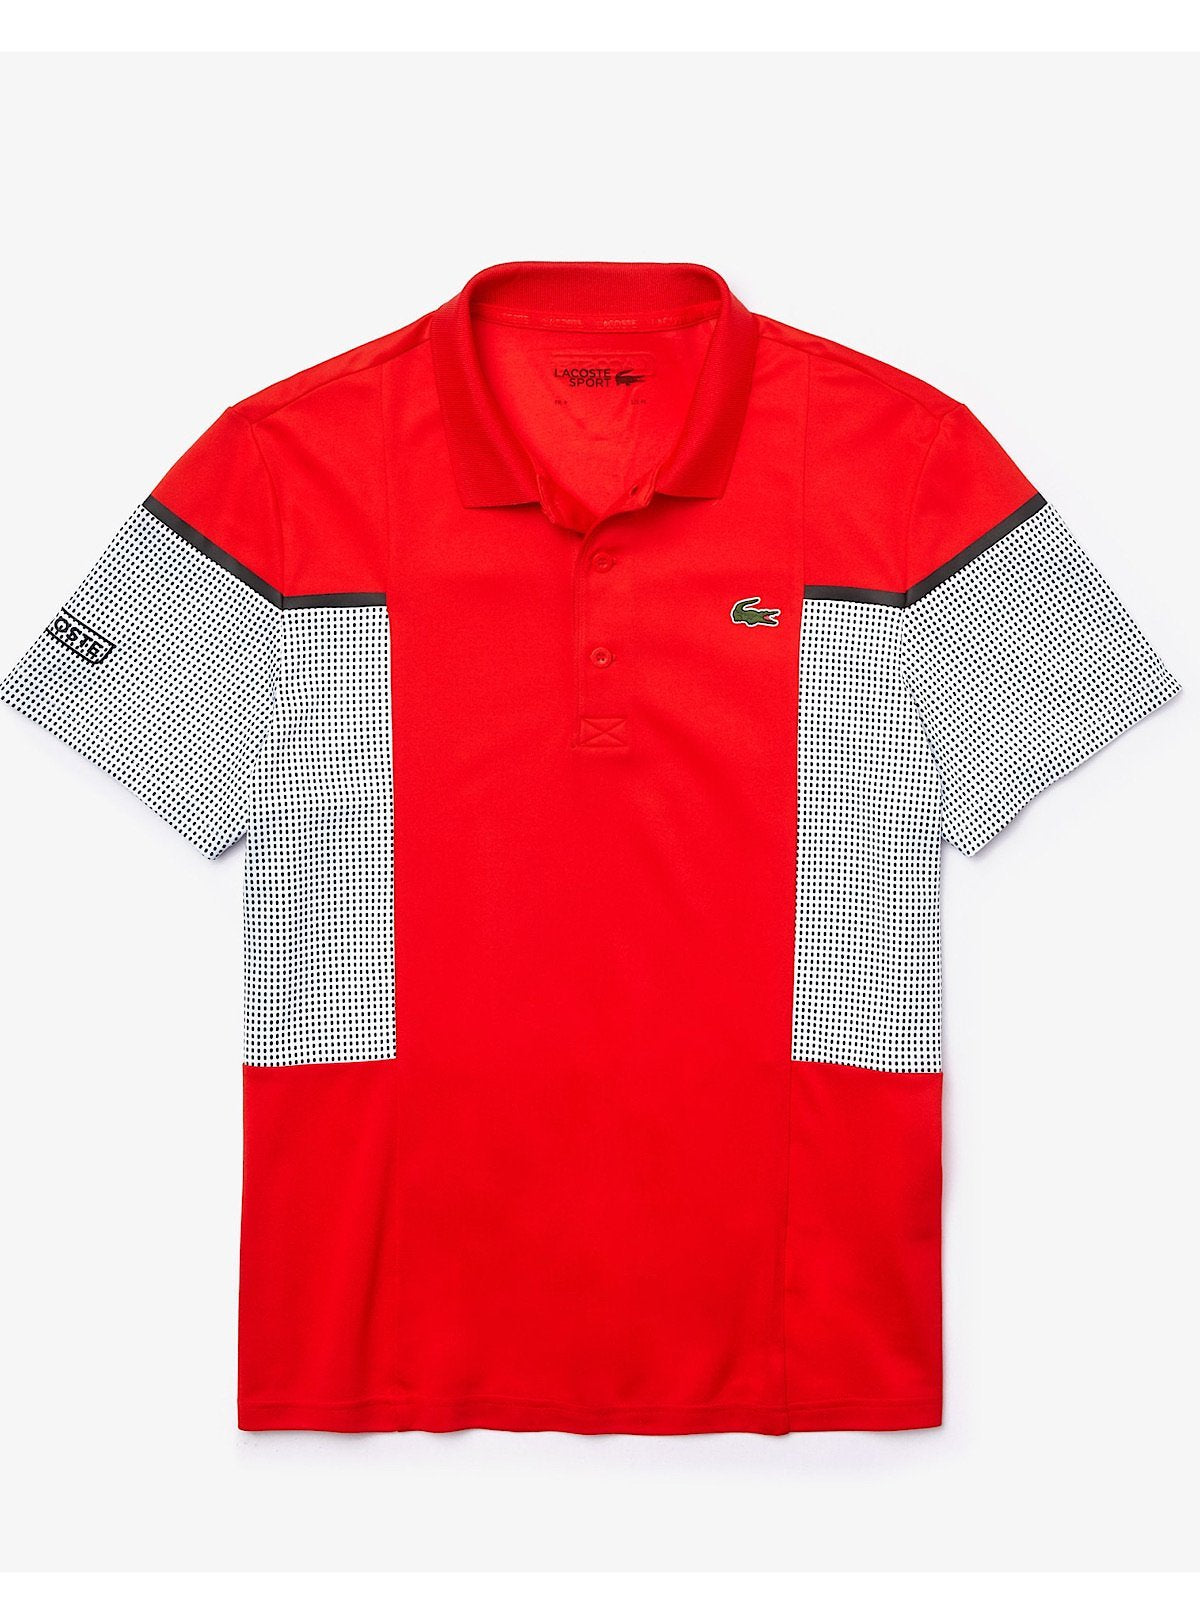 Lacoste T-Shirt - Mesh Polo - Red - DH4754